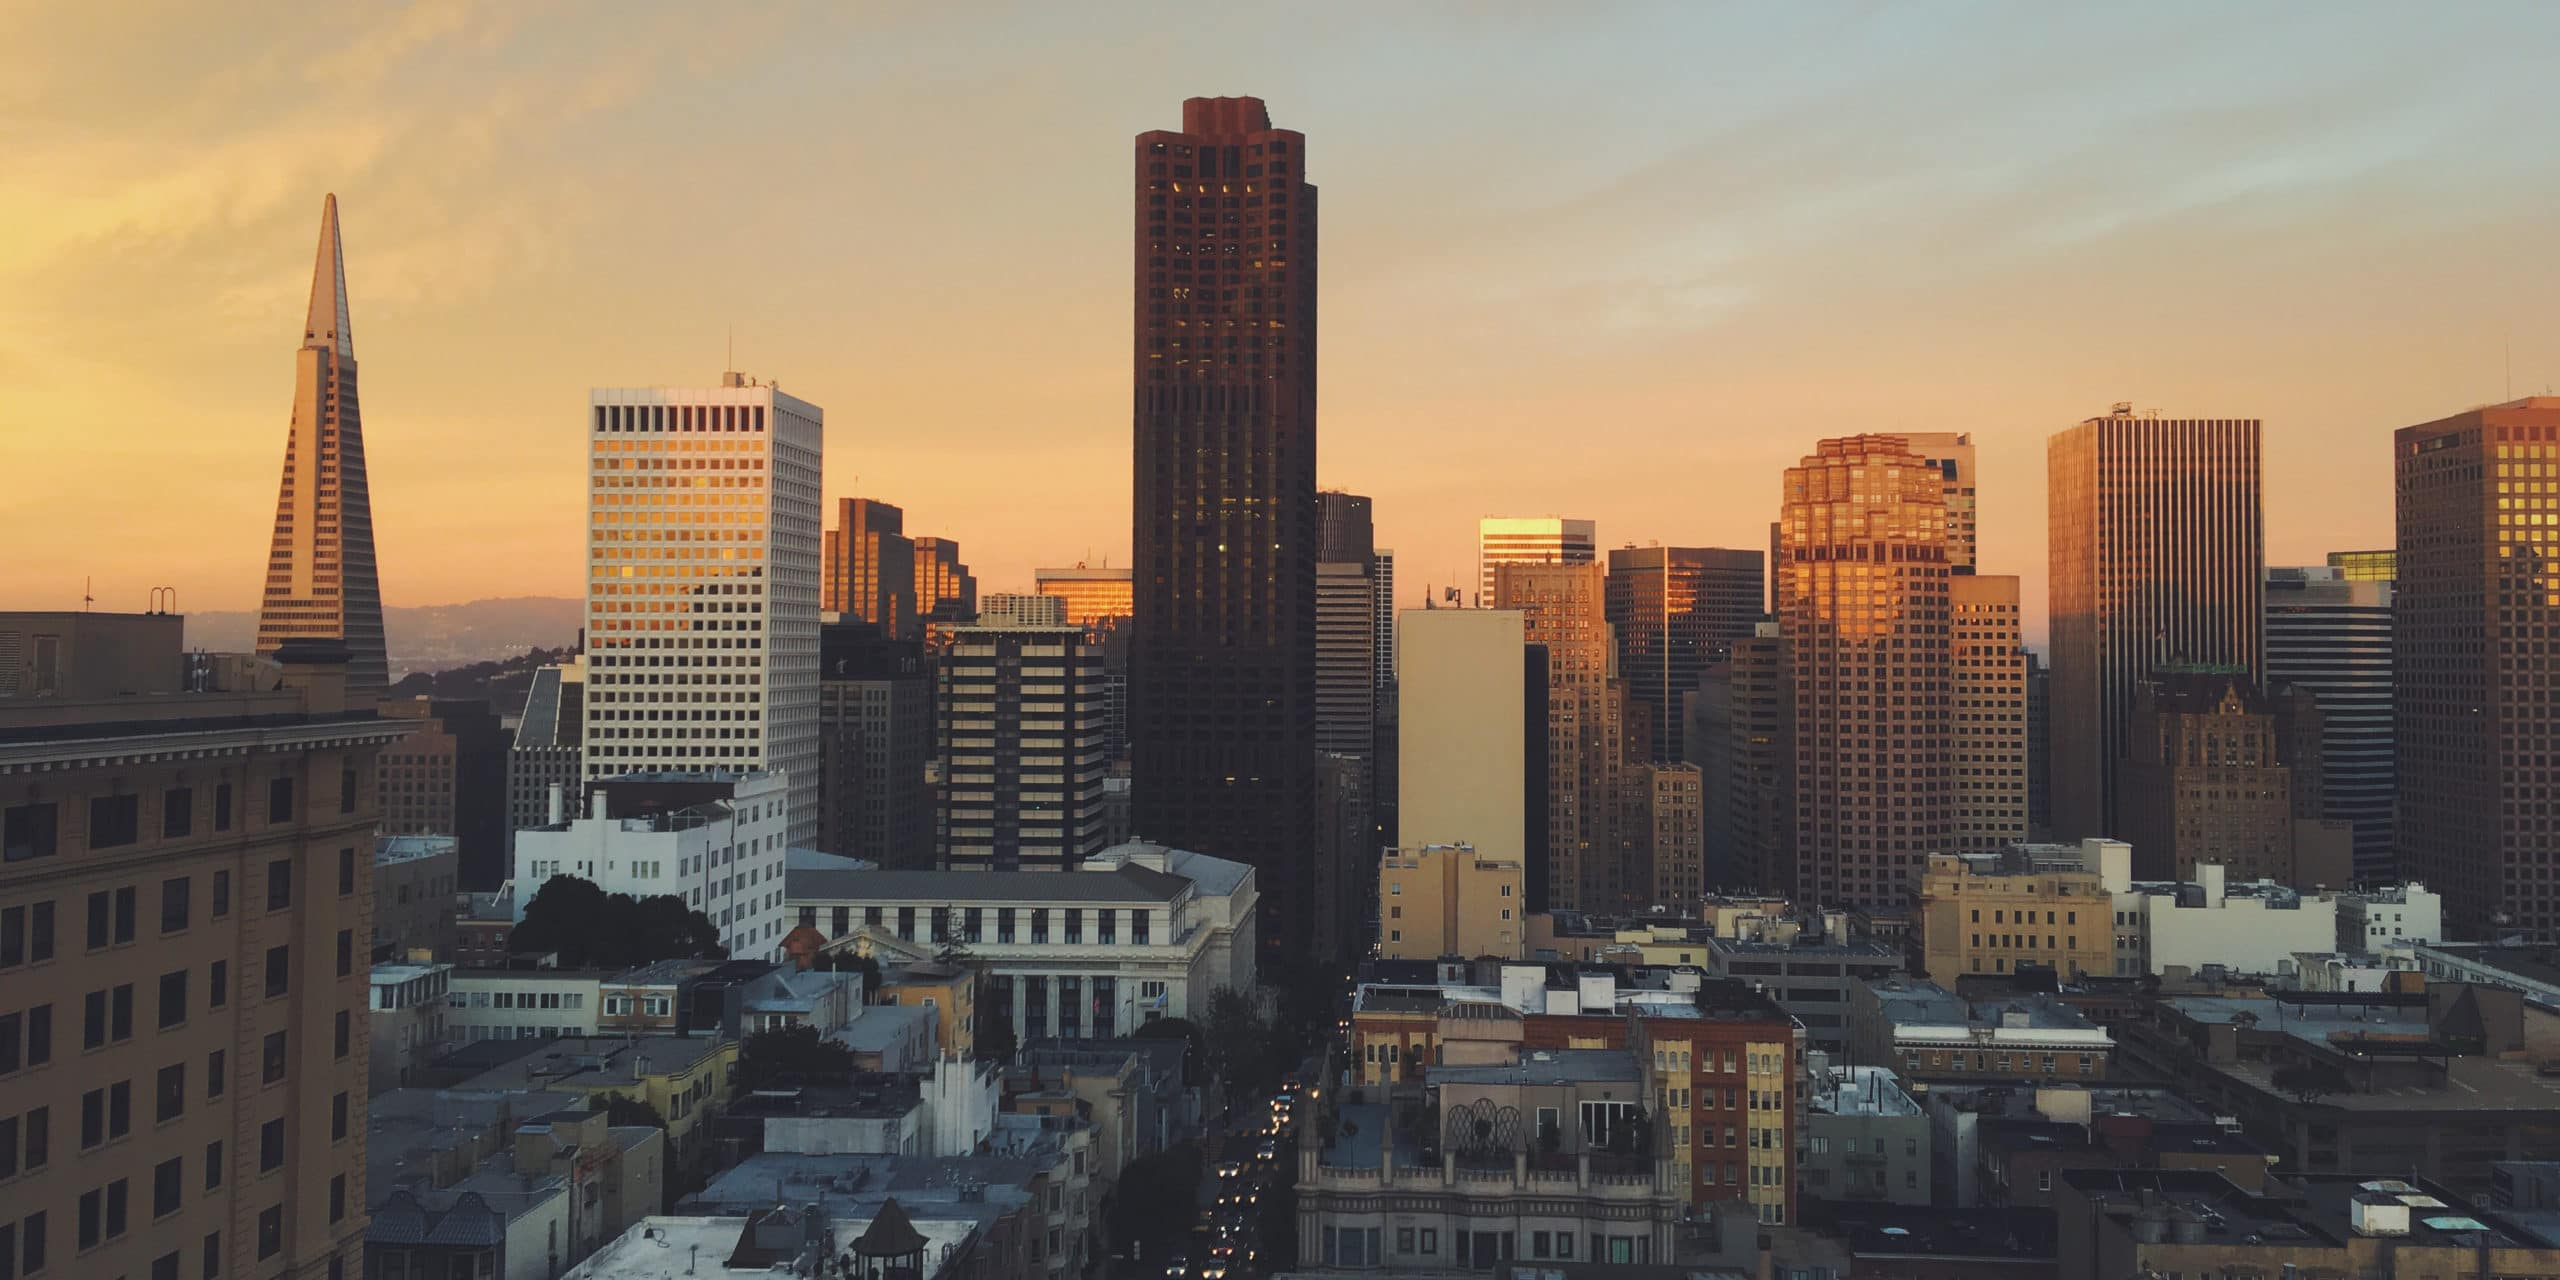 View of San Francisco city skyline at sunrise. Several sky scrapers and high rises with pale blue skies in the background.